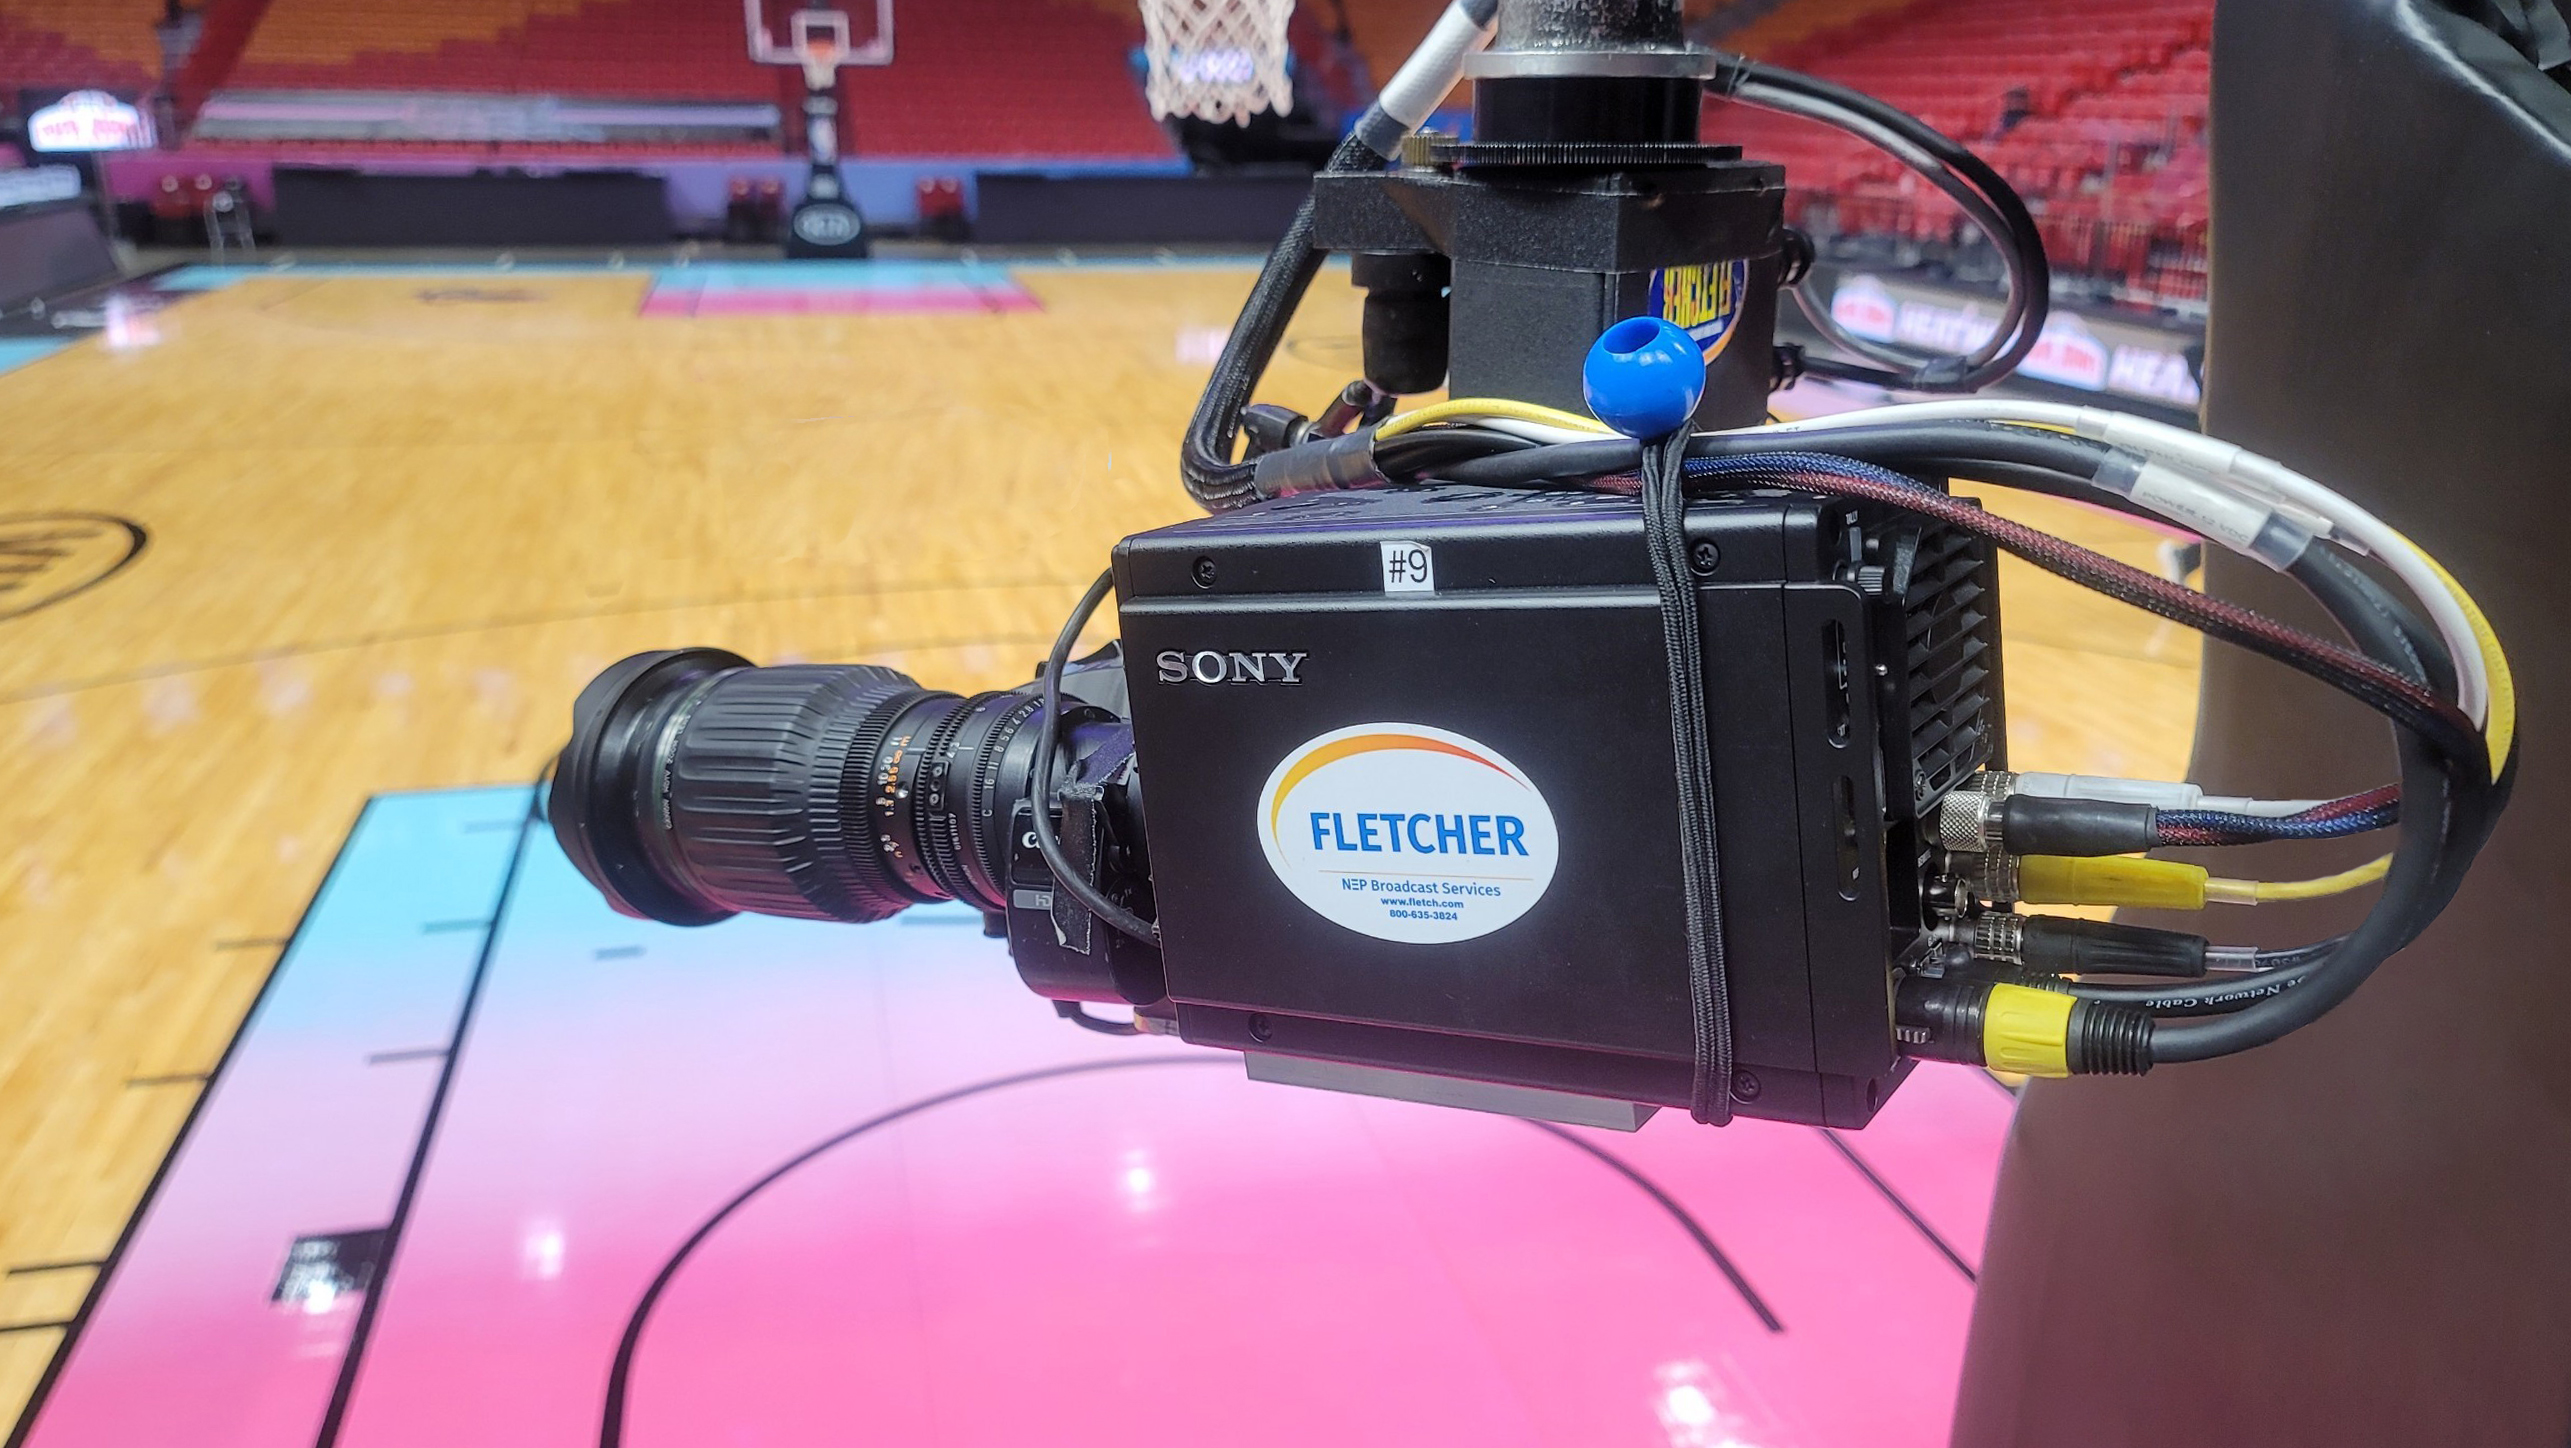 Fletcher Adds Sony's Compact, HDR Capable HDC-P31 POV System Cameras to Their Starting Lineup